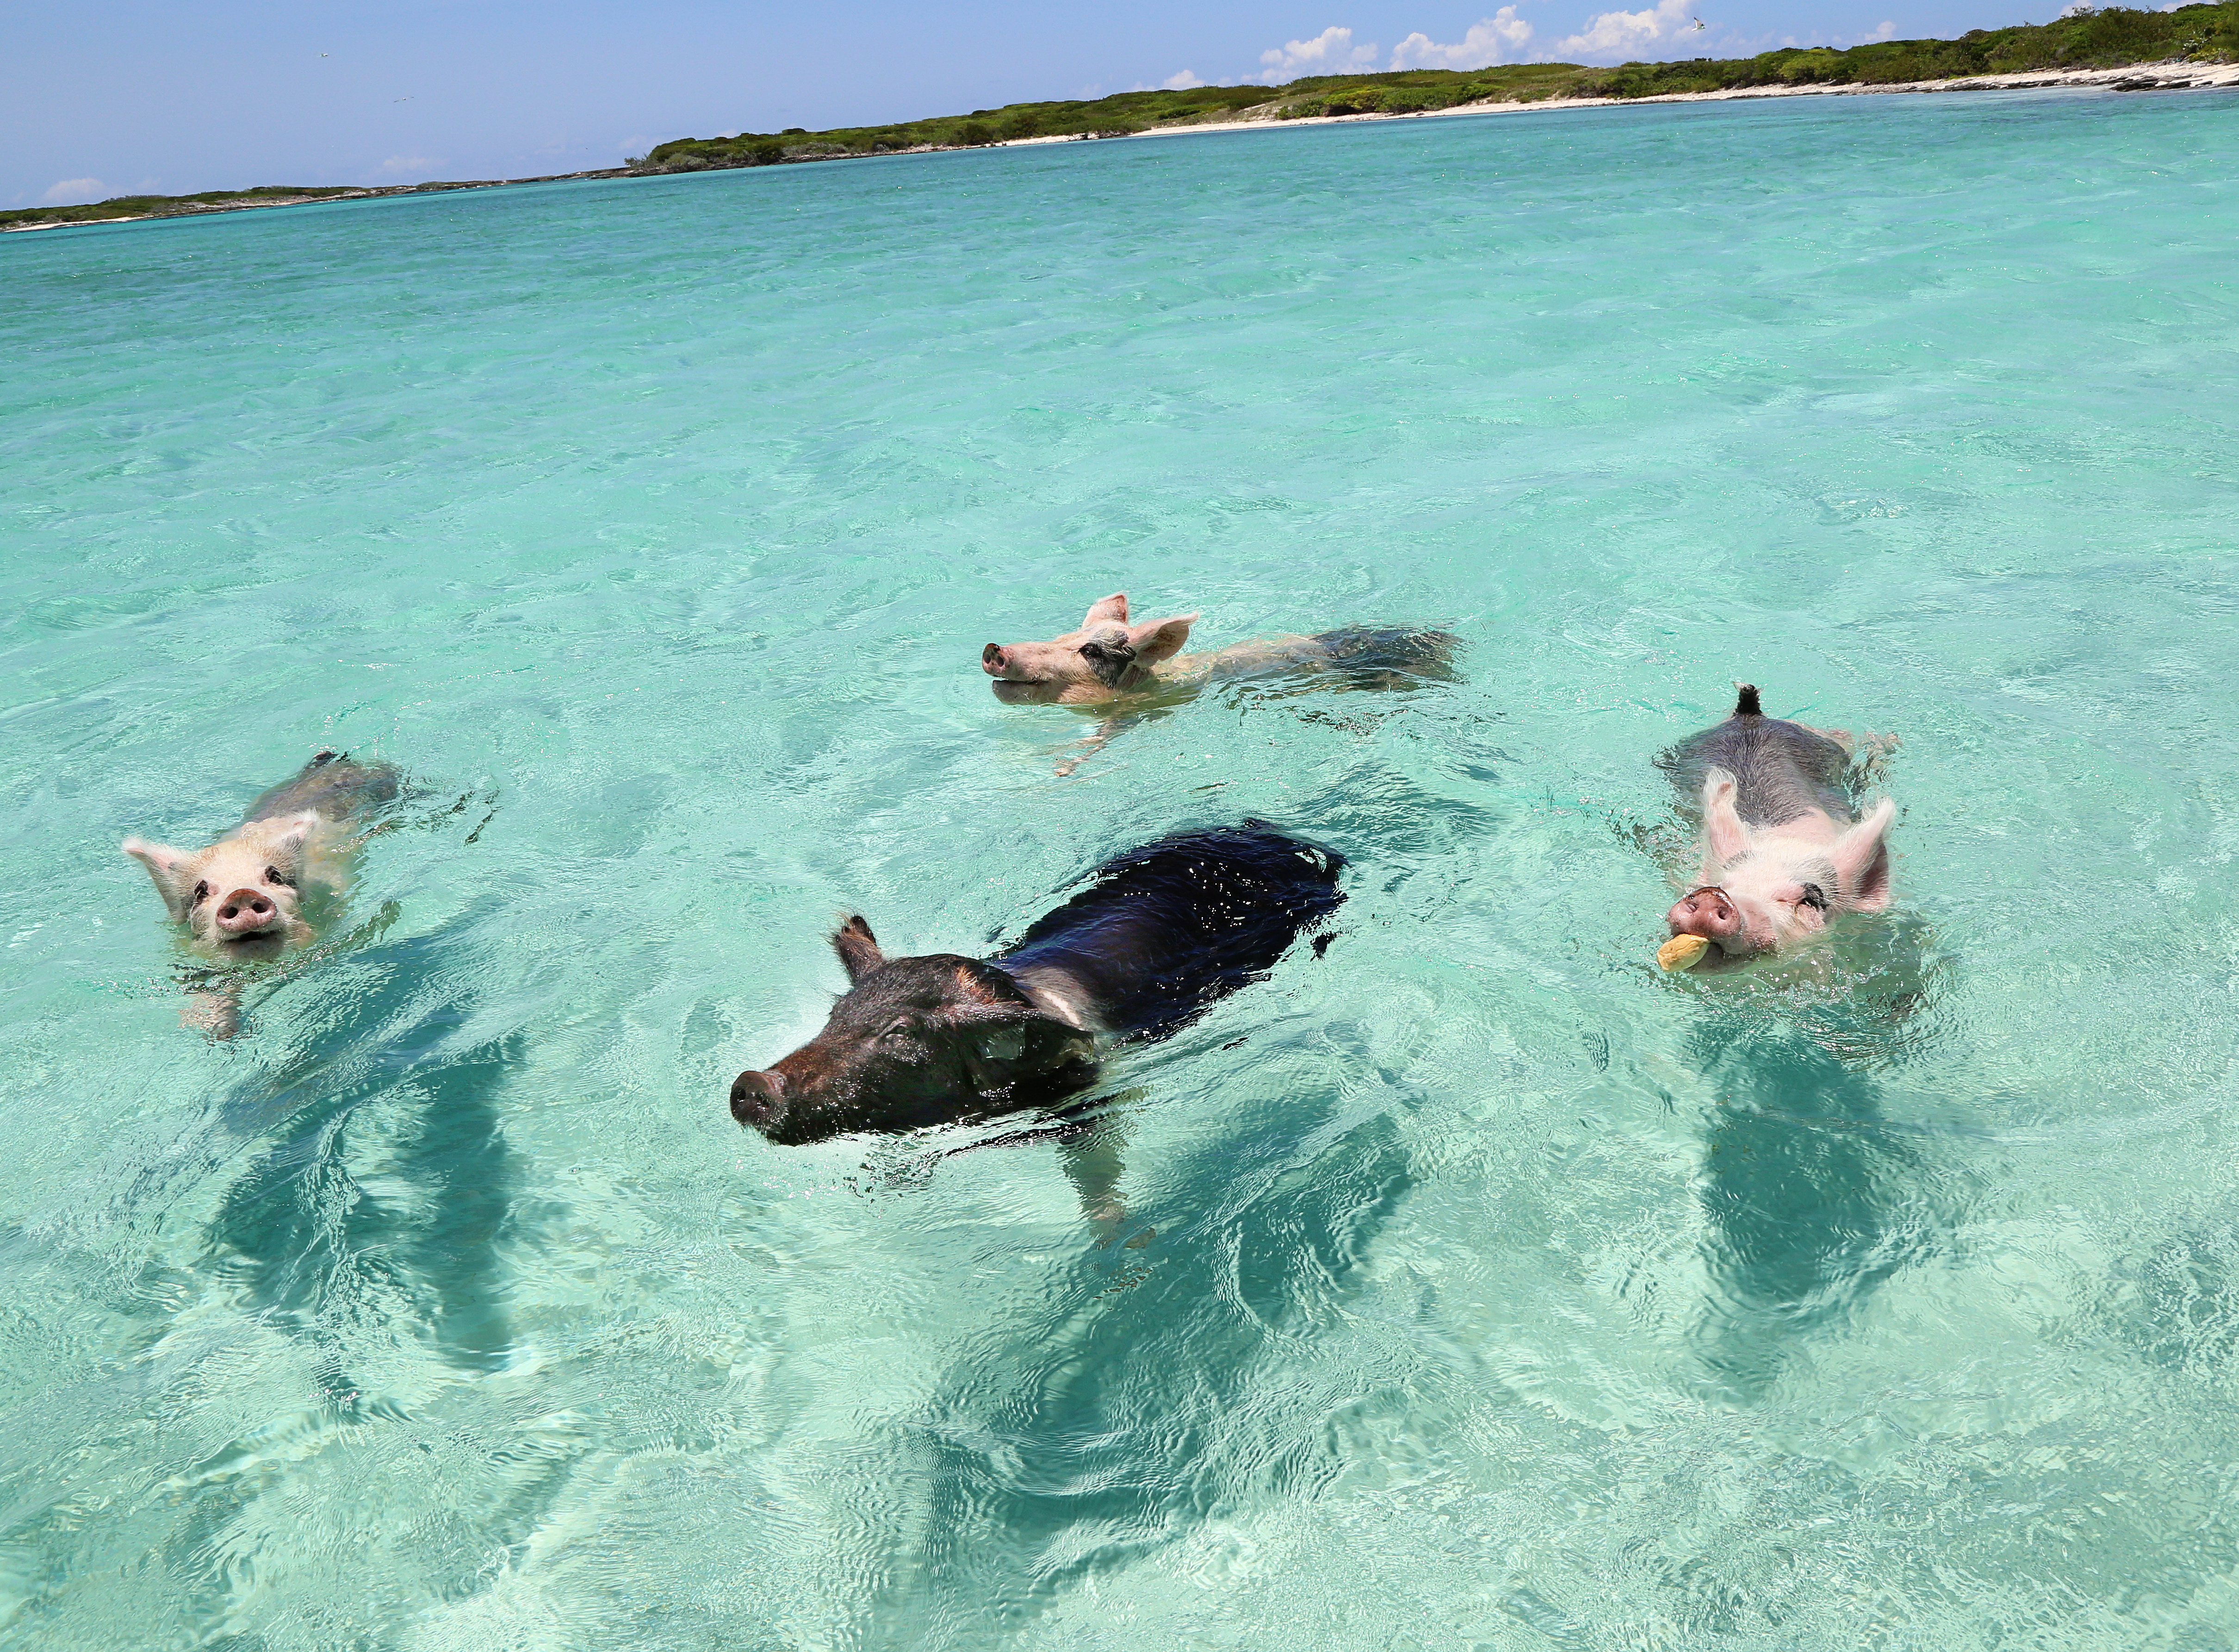 Picture of pigs swimming the ocean